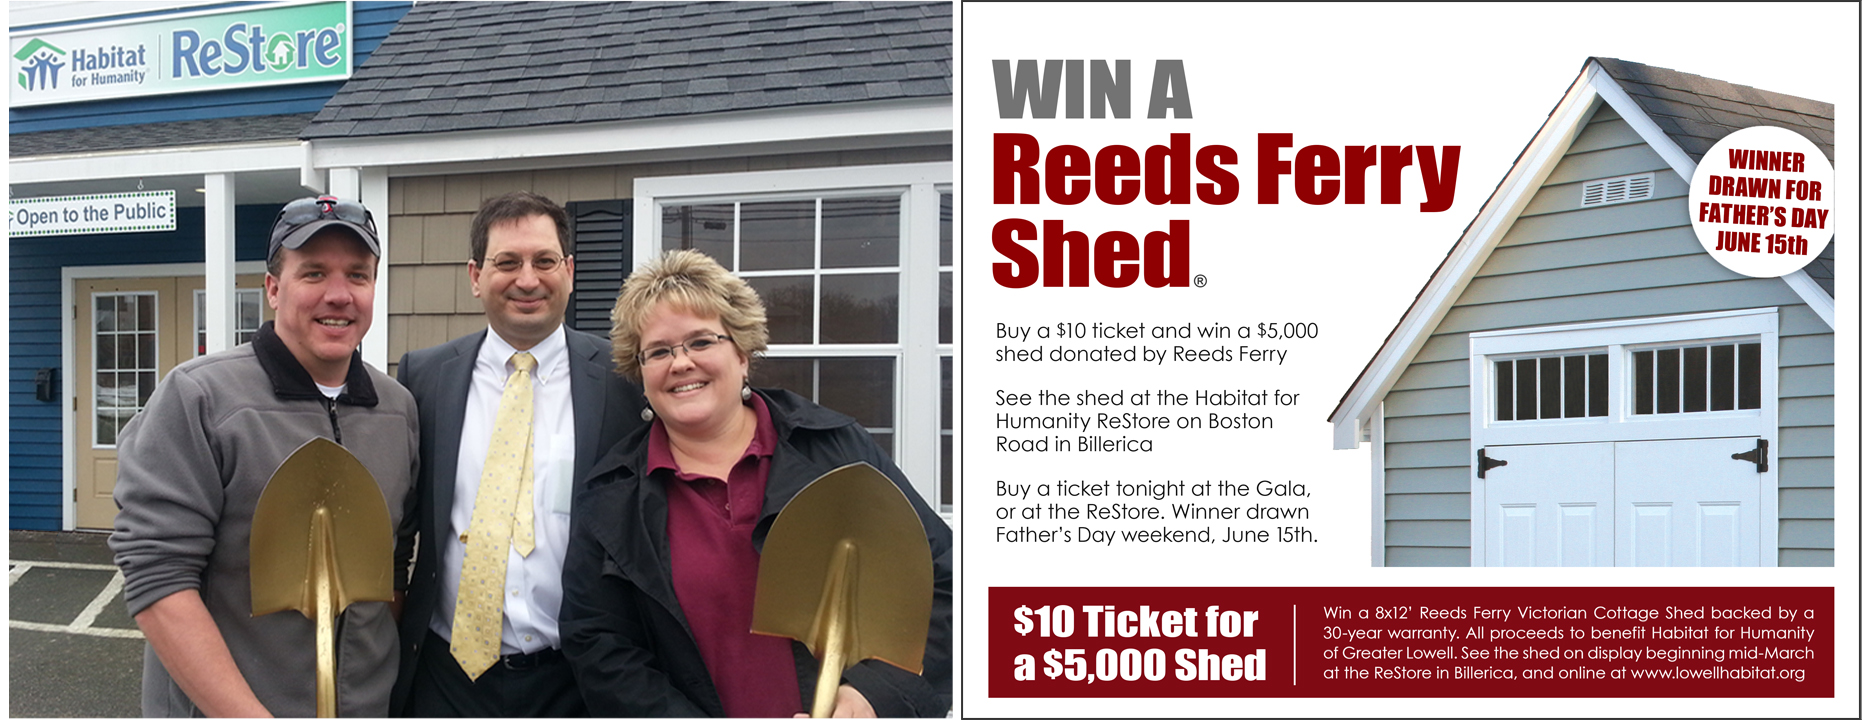 Reeds Ferry Sheds and Habitat for Humanity of Lowell